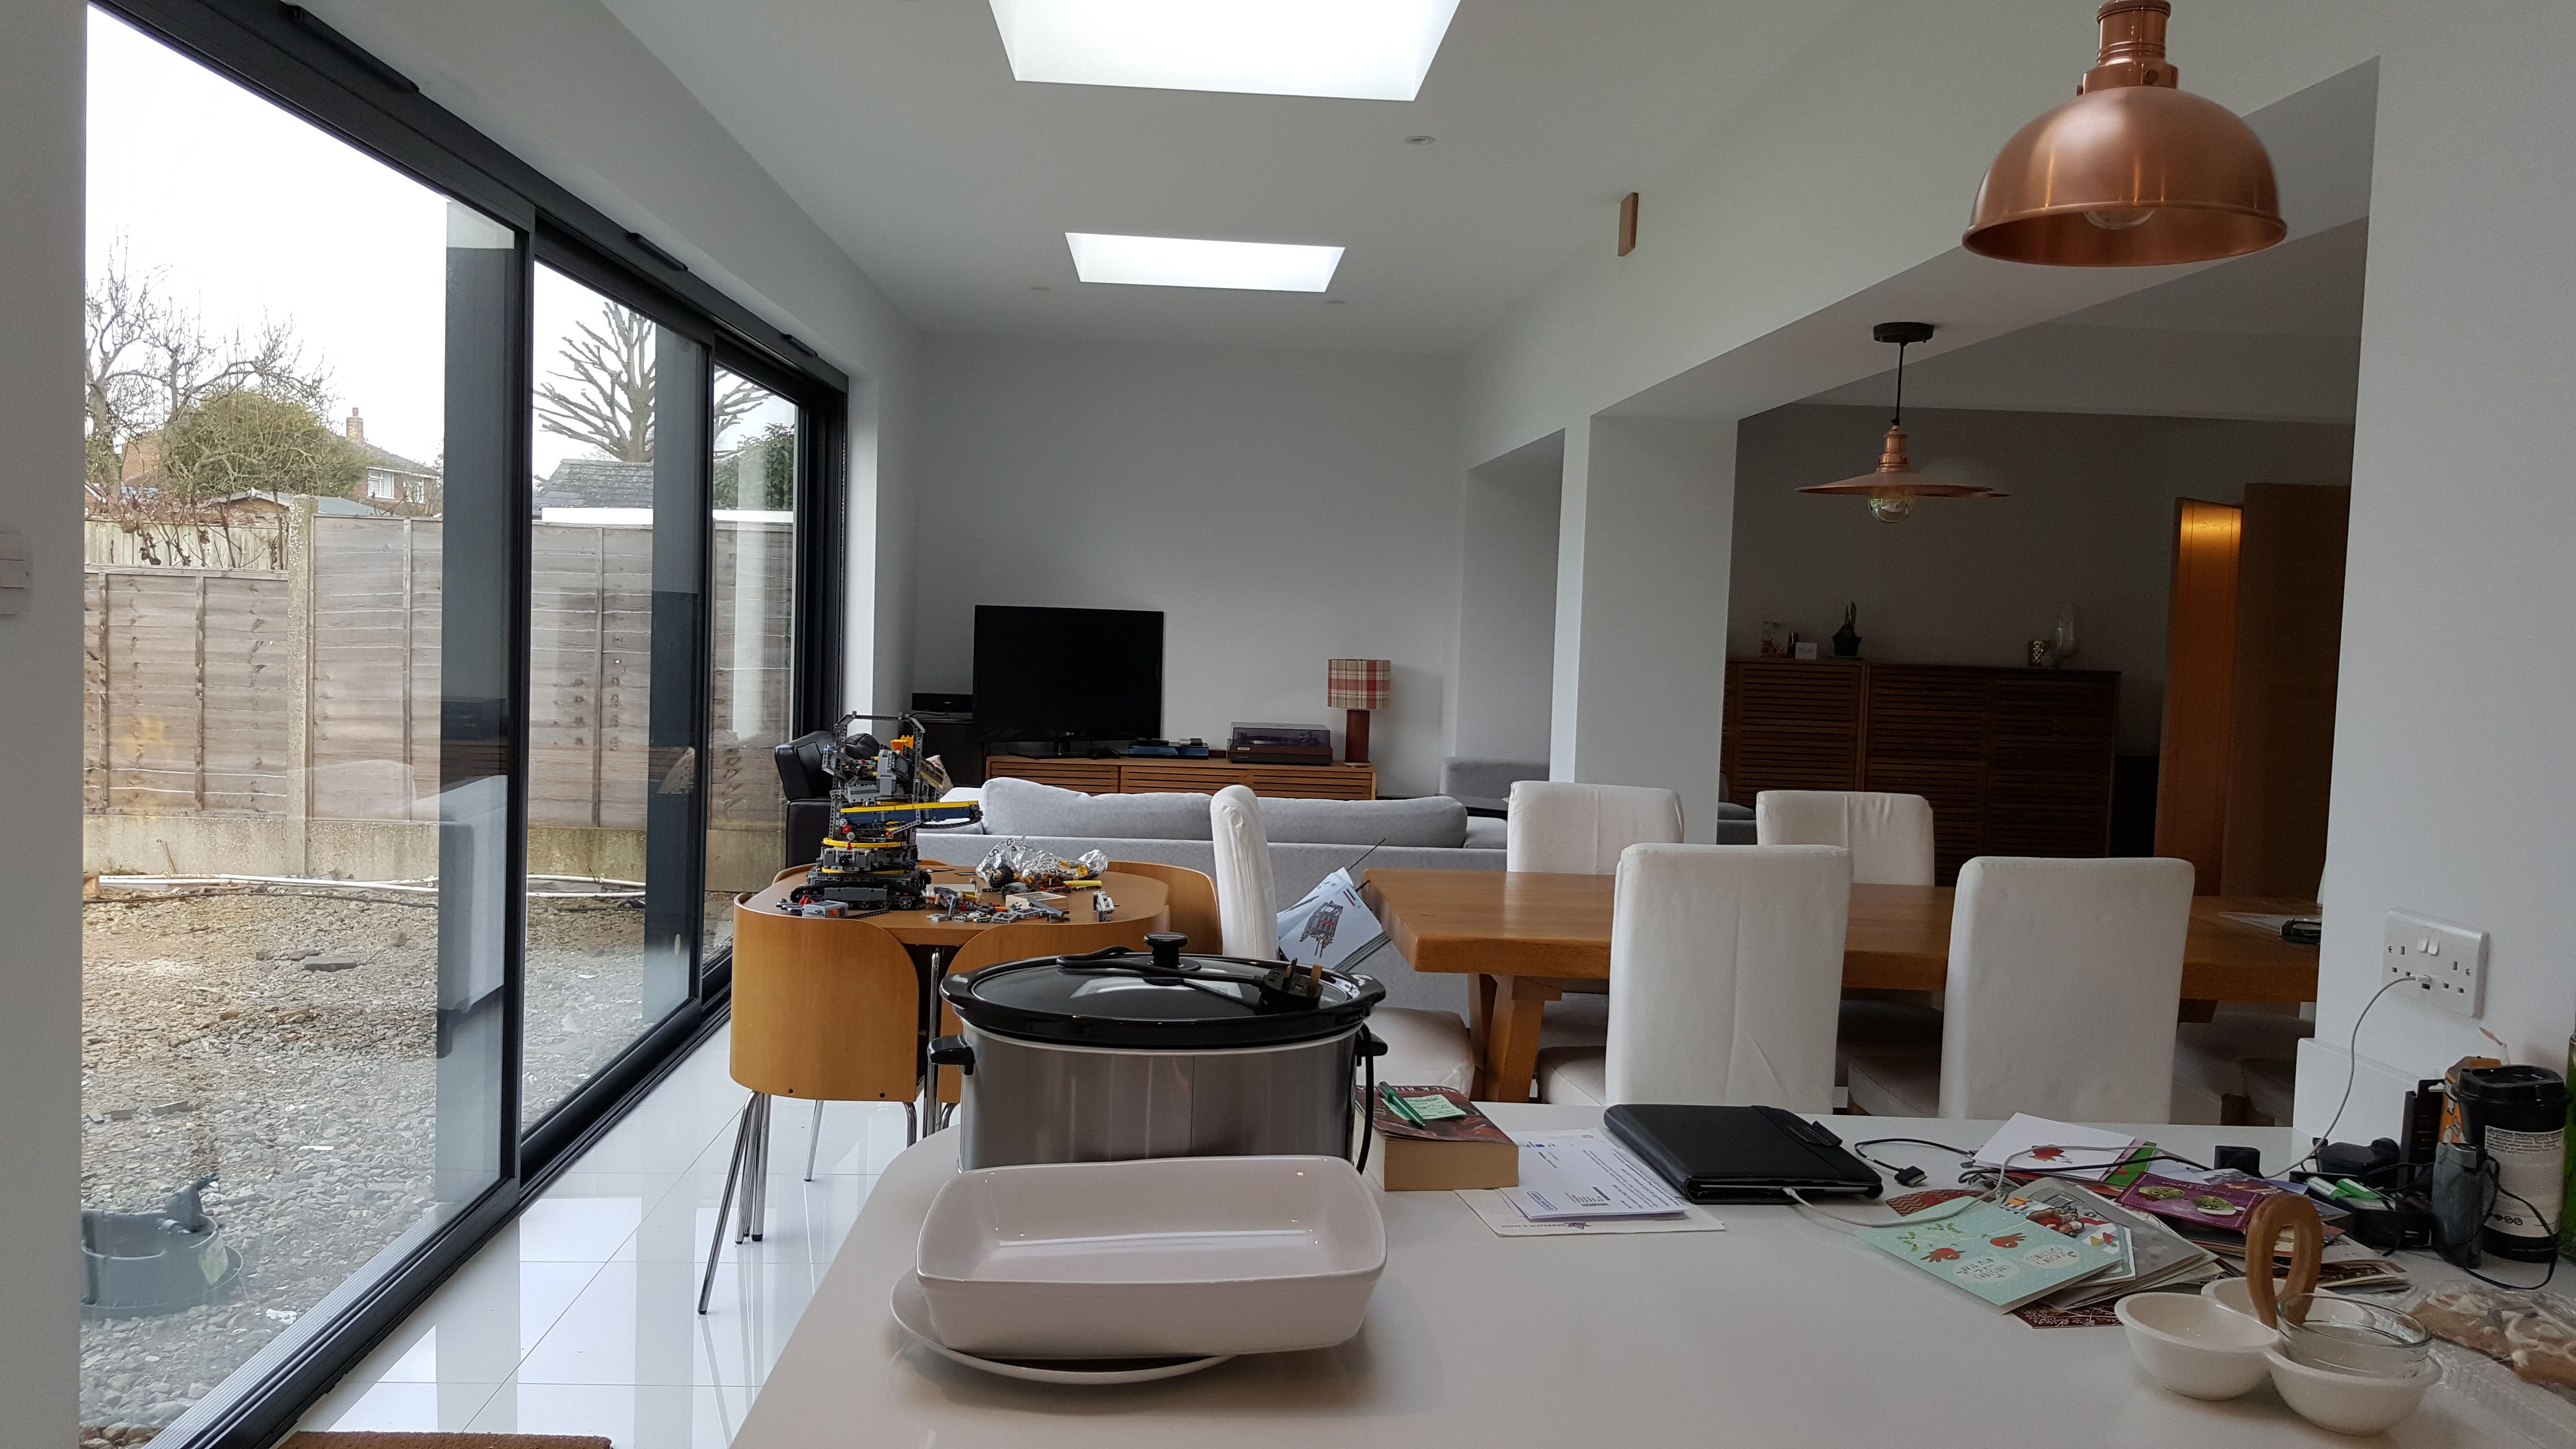 Flat roof (it is the inside view of the white L-shaped ...